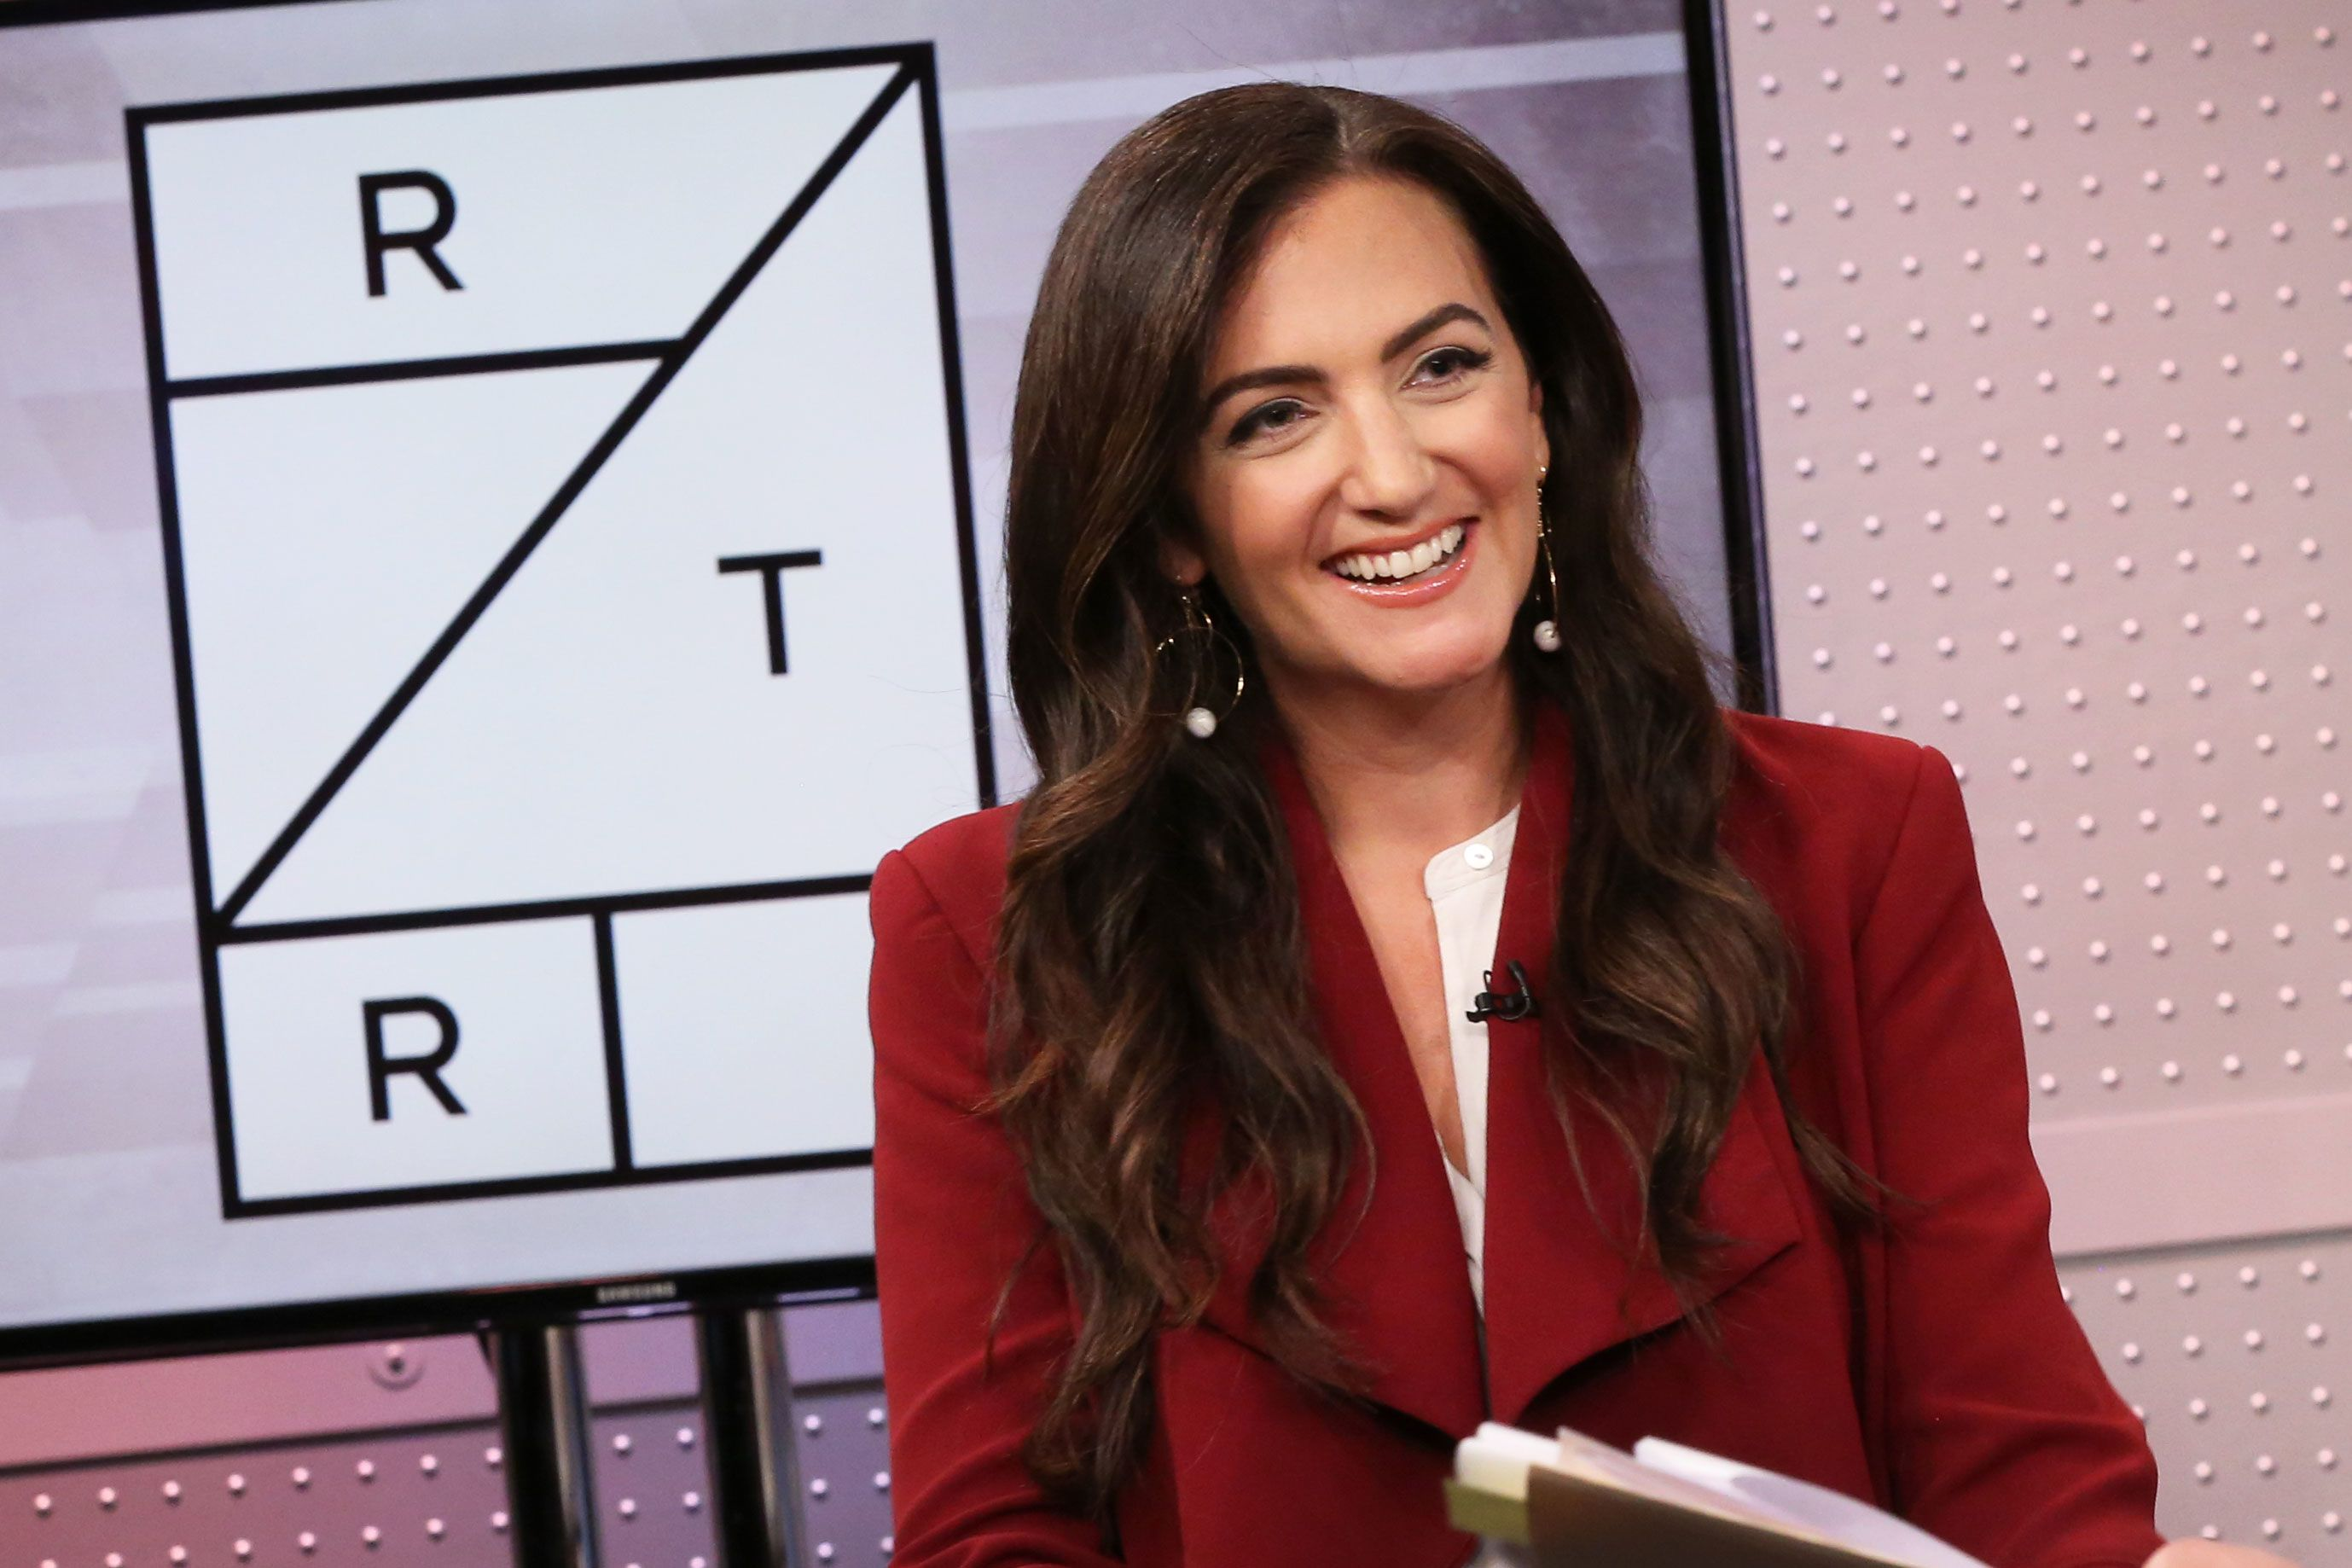 Rent the Runway CEO Jennifer Hyman on profitability and going public